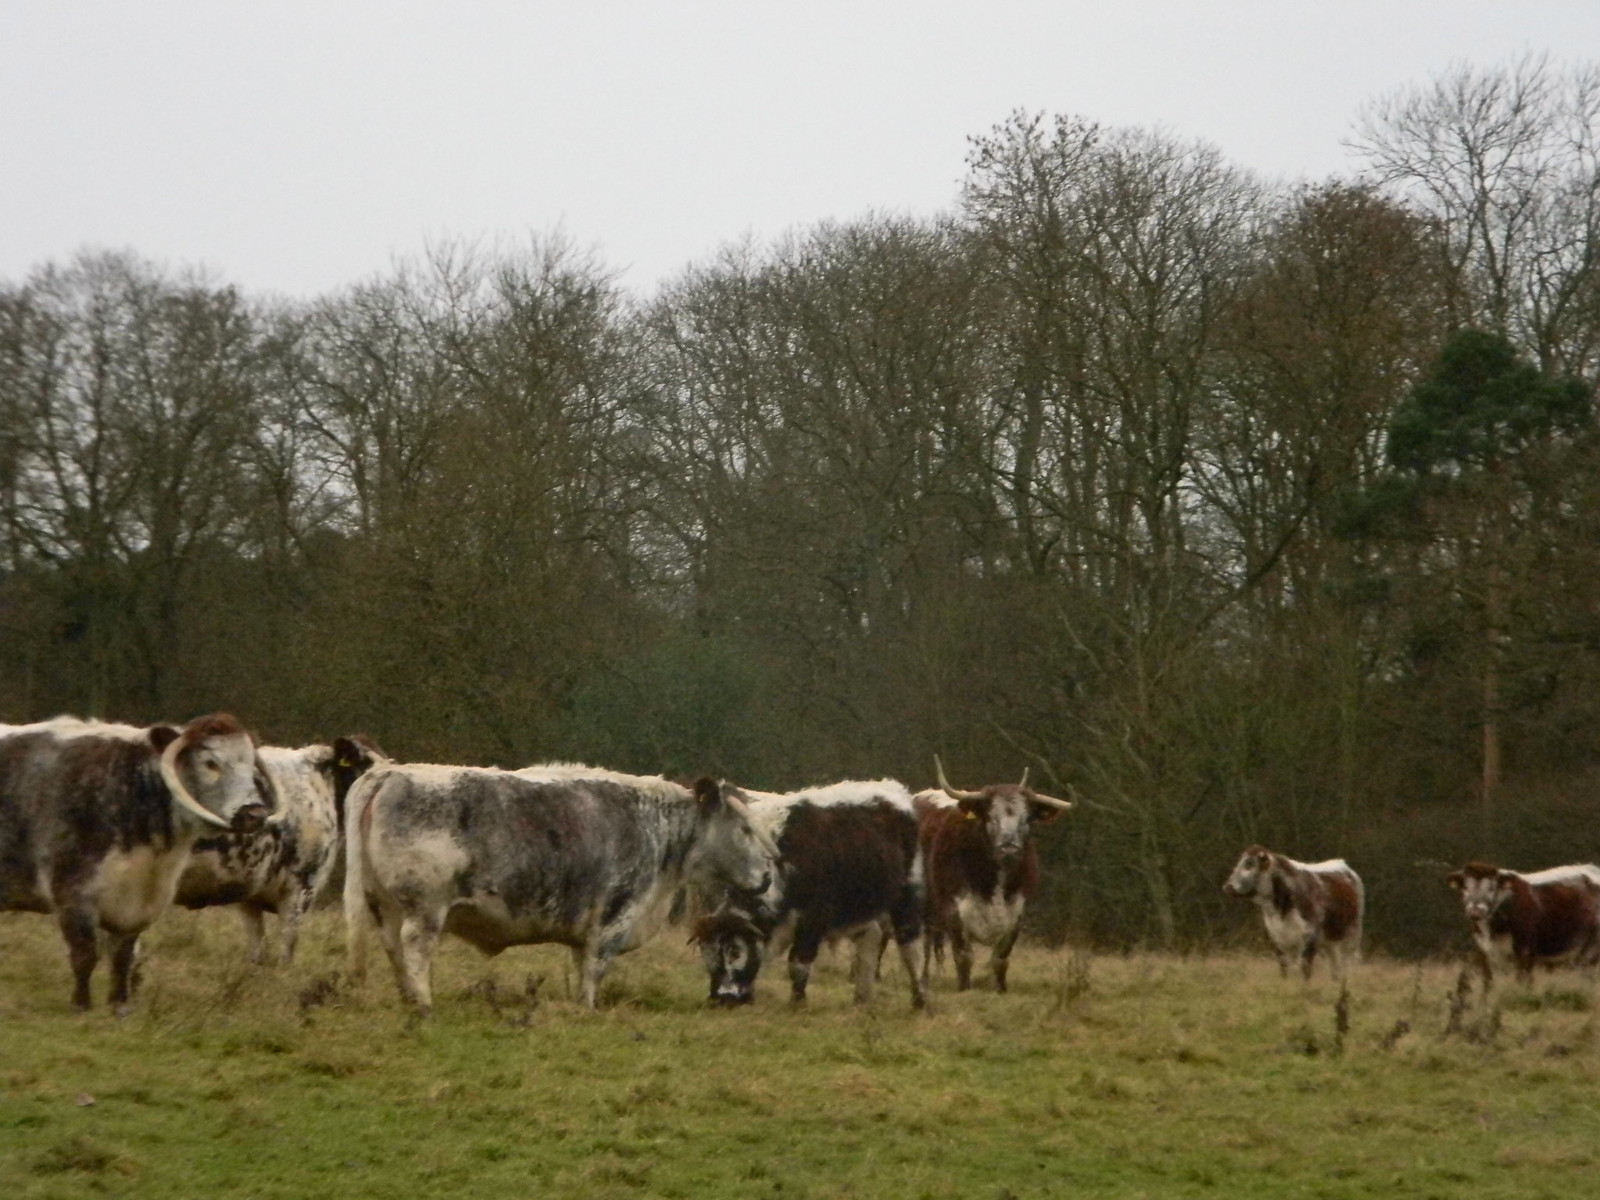 Scary looking cows Ok so maybe not that scary. Loughton to Epping